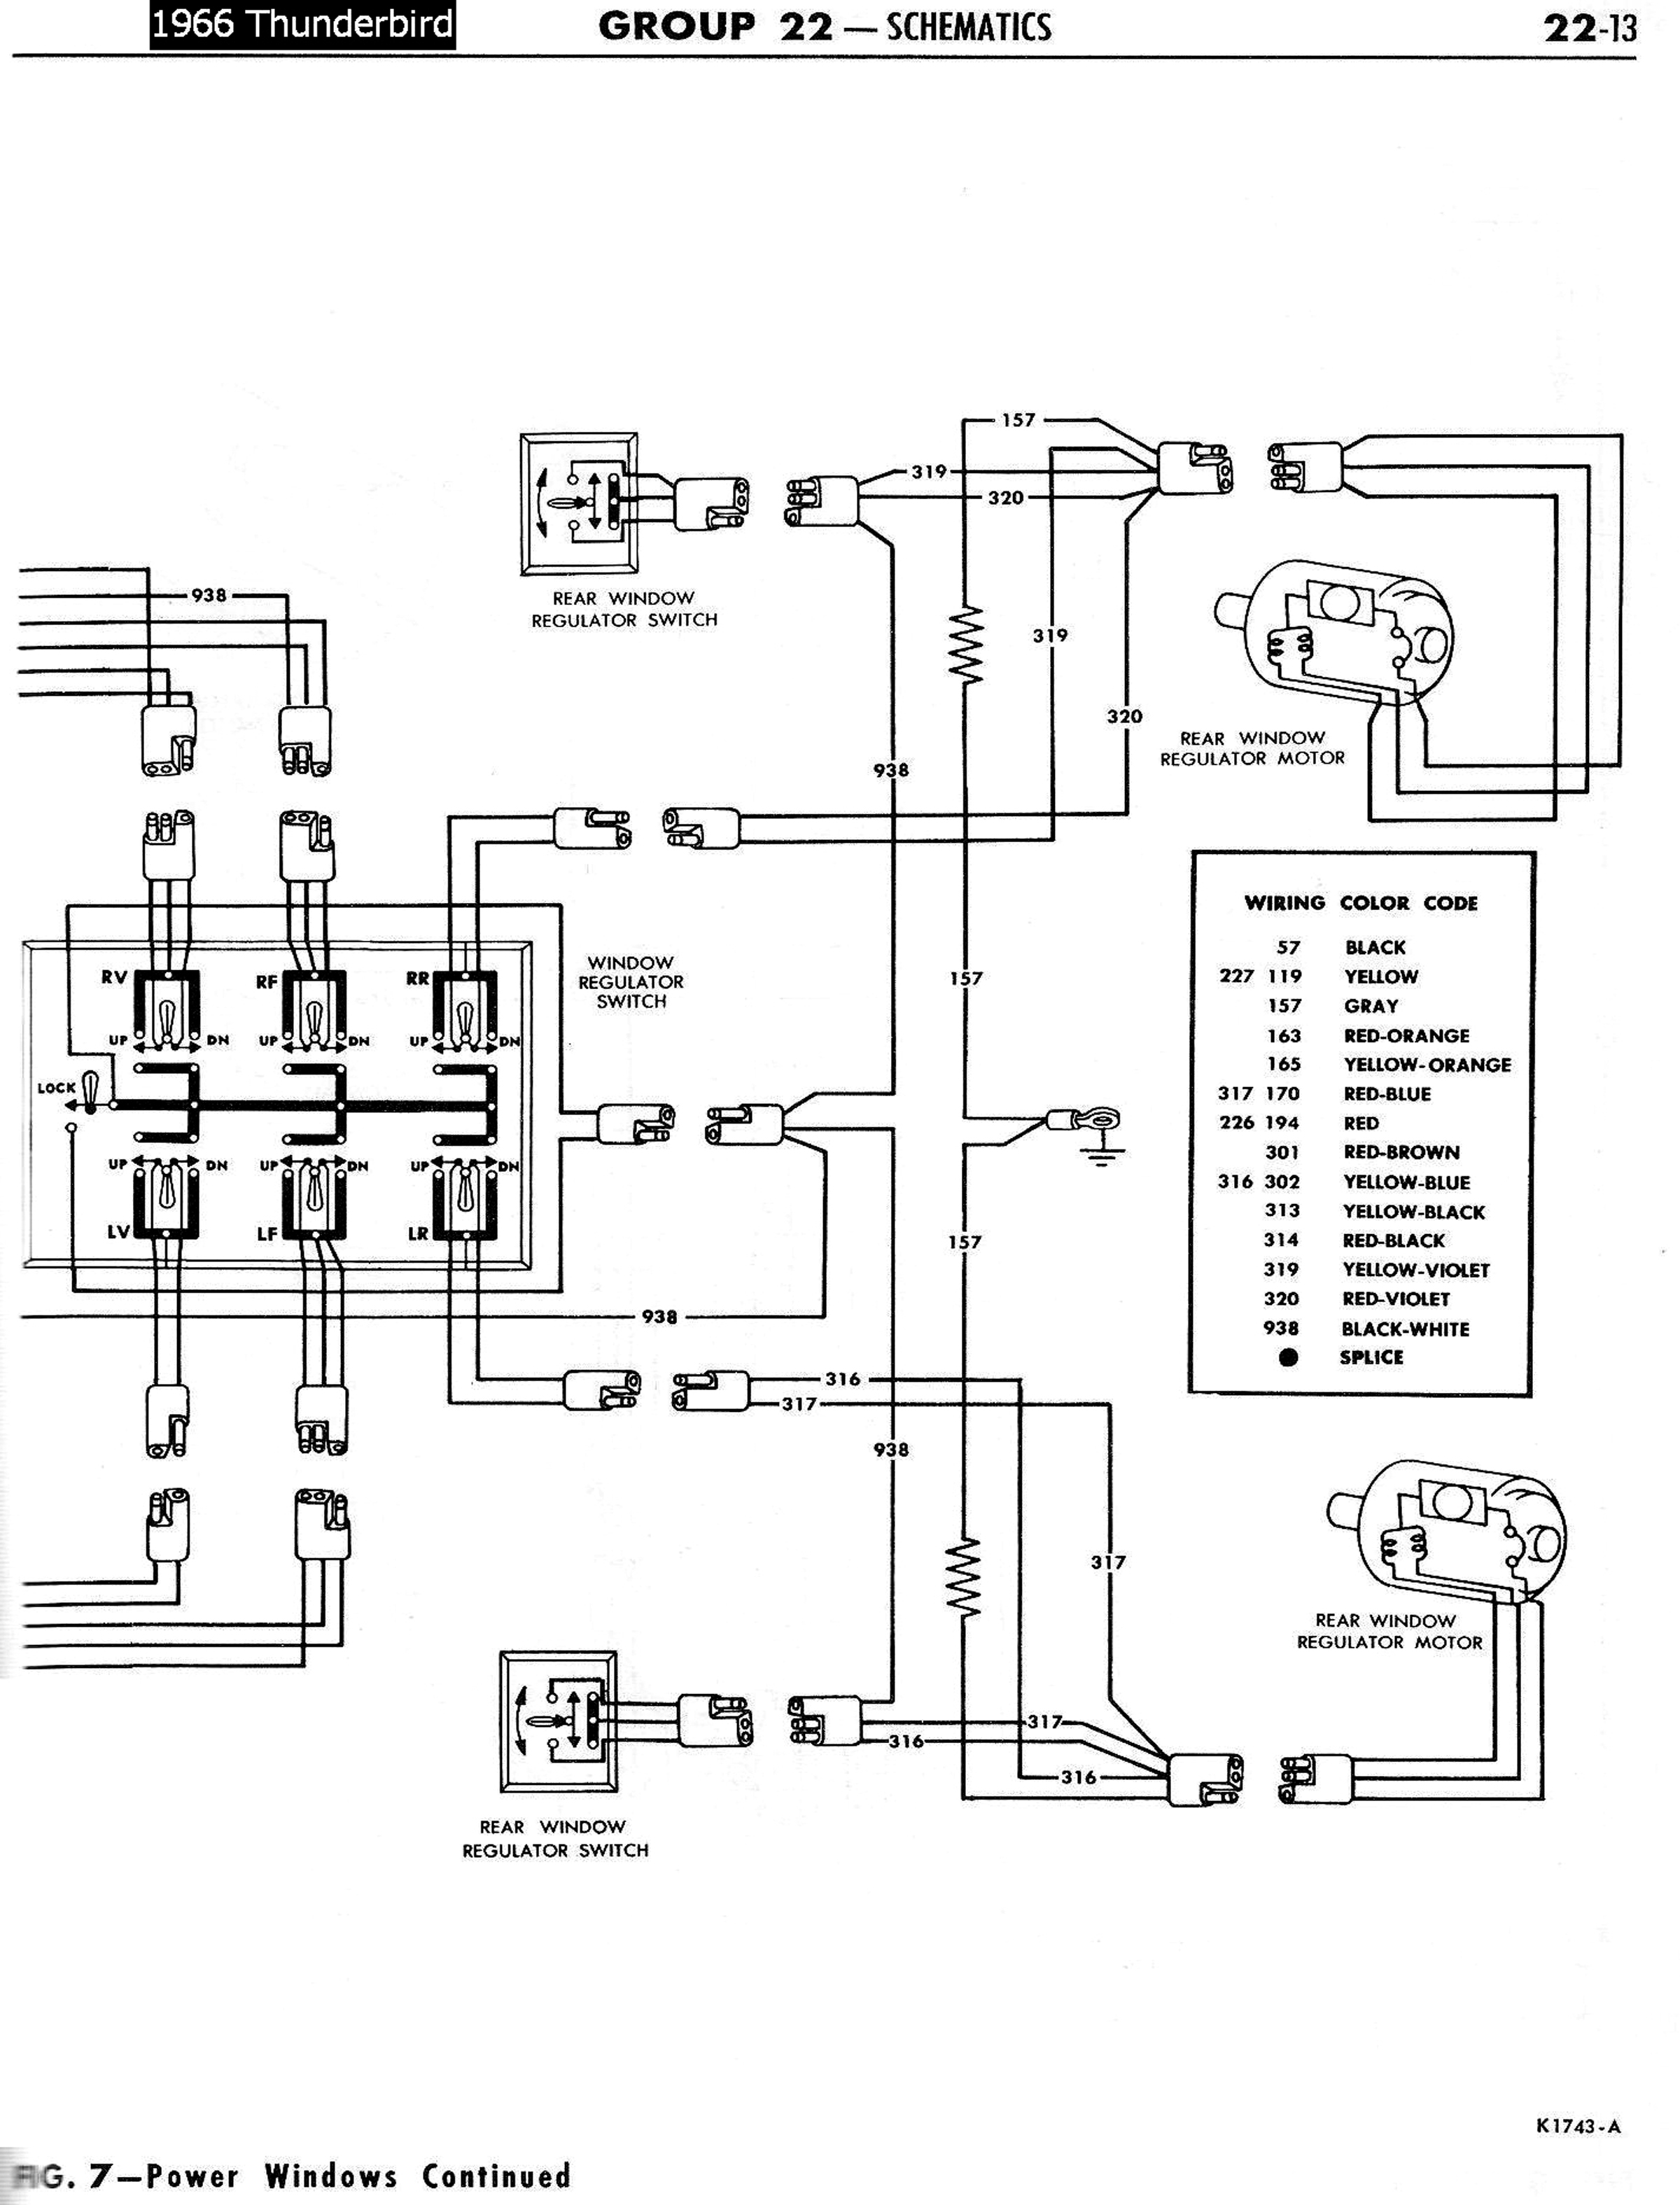 68 Corvette Wiring Diagram Power Windows Search For Diagrams 1968 Engine Harness Ranchero U2022 Rh Msblog Co